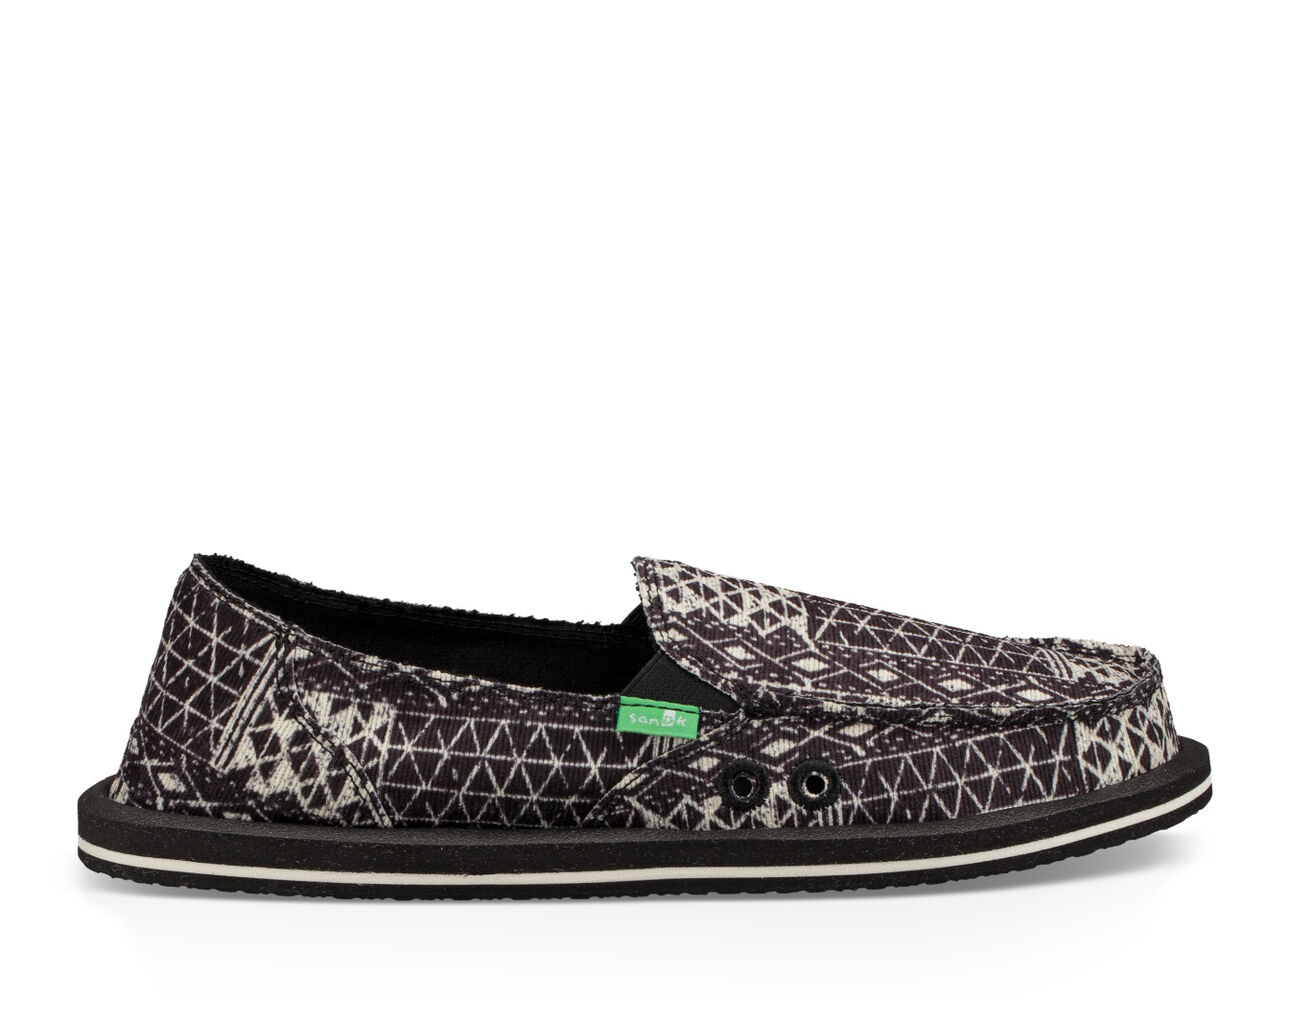 Where Can I Buy Sanuk Shoes In Stores